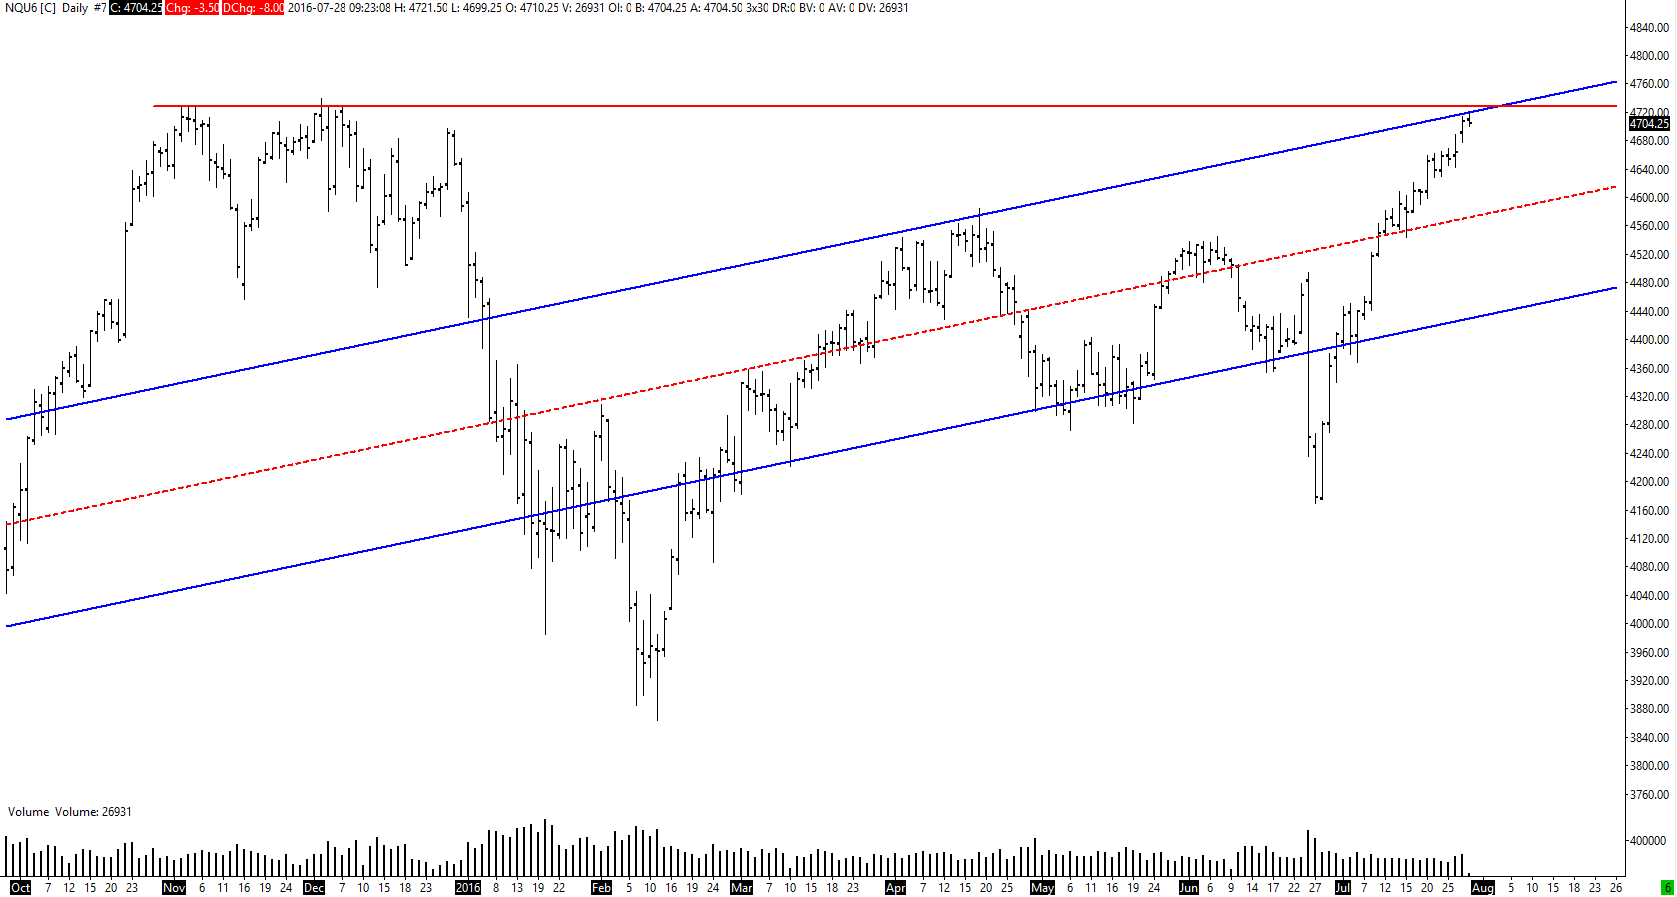 nq28072016daily.png